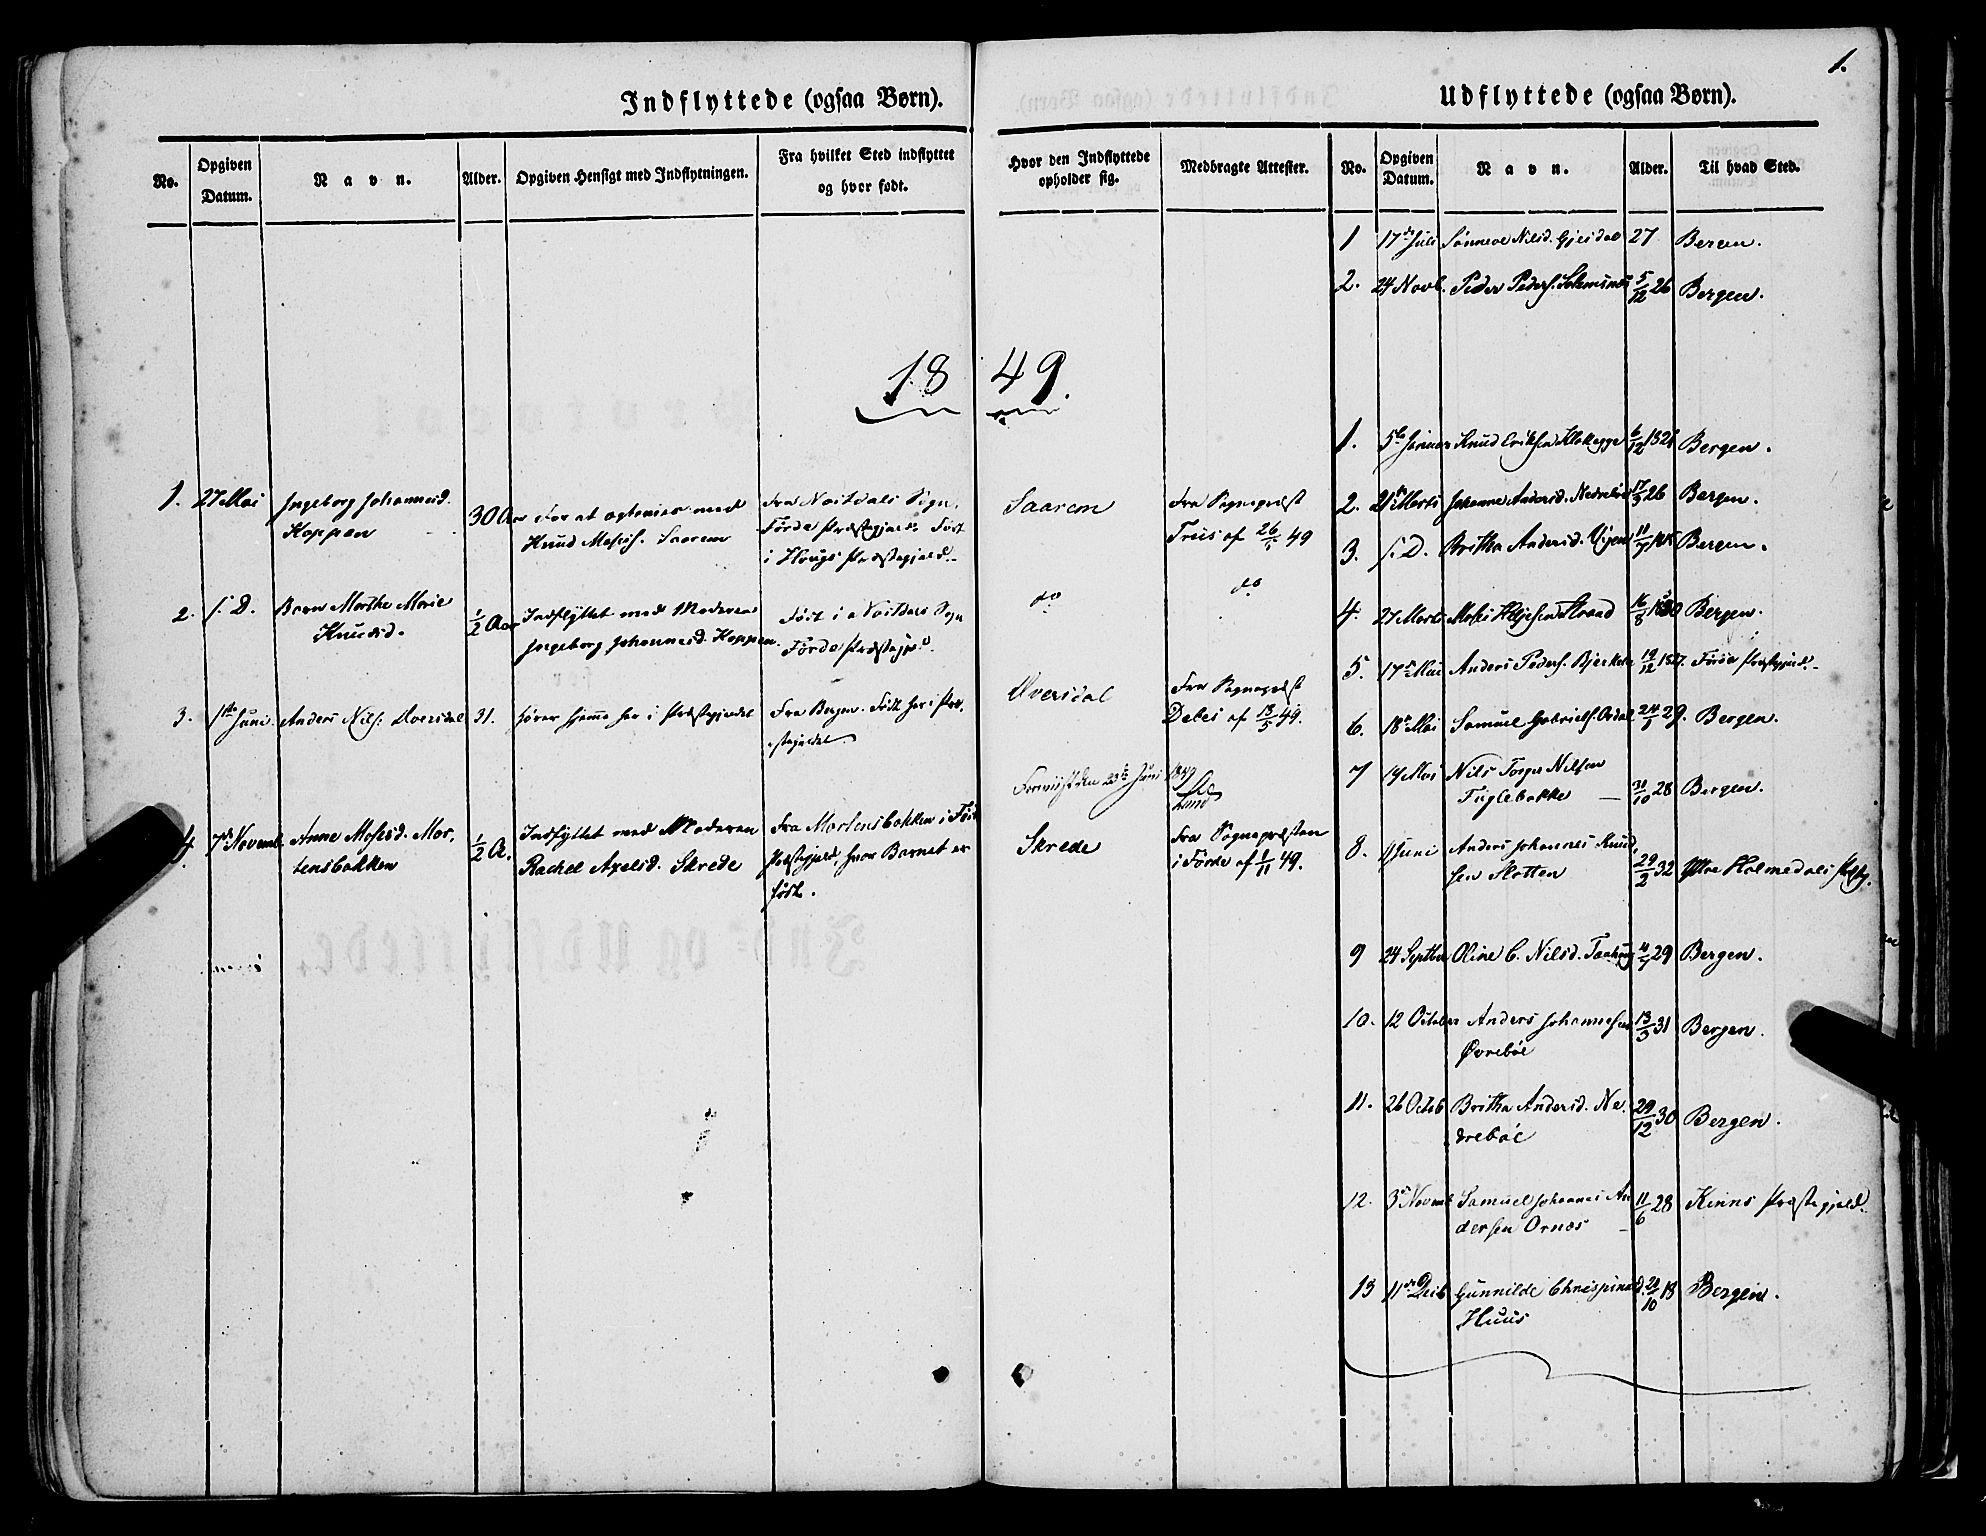 SAB, Jølster sokneprestembete, H/Haa/Haaa/L0010: Parish register (official) no. A 10, 1847-1865, p. 1